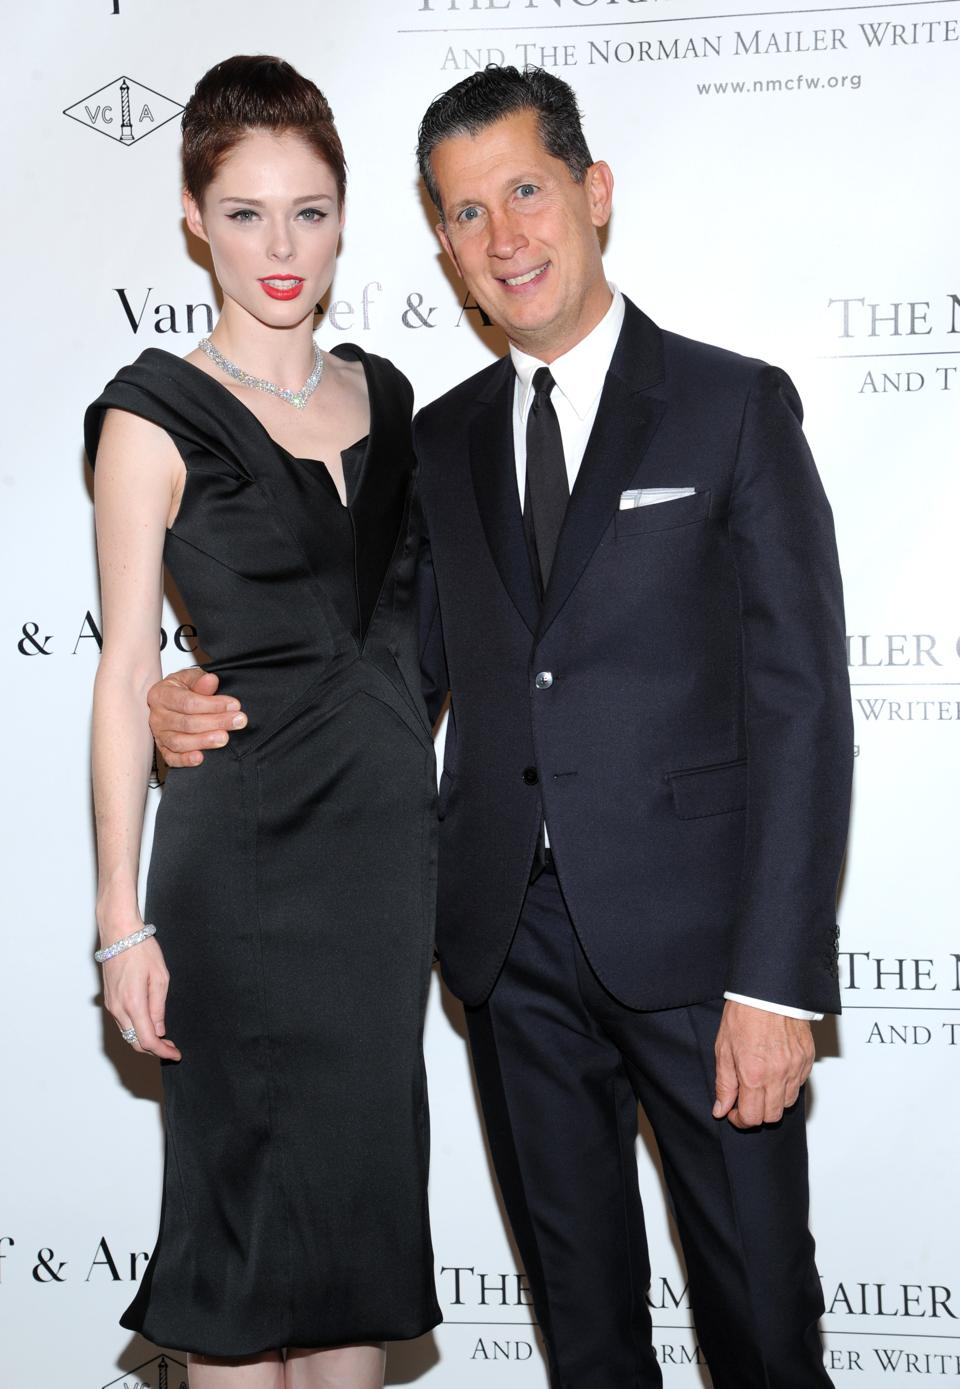 Model Coco Rocha, left, and Stefano Tonchi pose for photographers during the fifth annual Norman Mailer Center benefit gala at the New York Public Library on Thursday, Oct. 17, 2013, in New York. (Photo by Evan Agostini/Invision/AP)